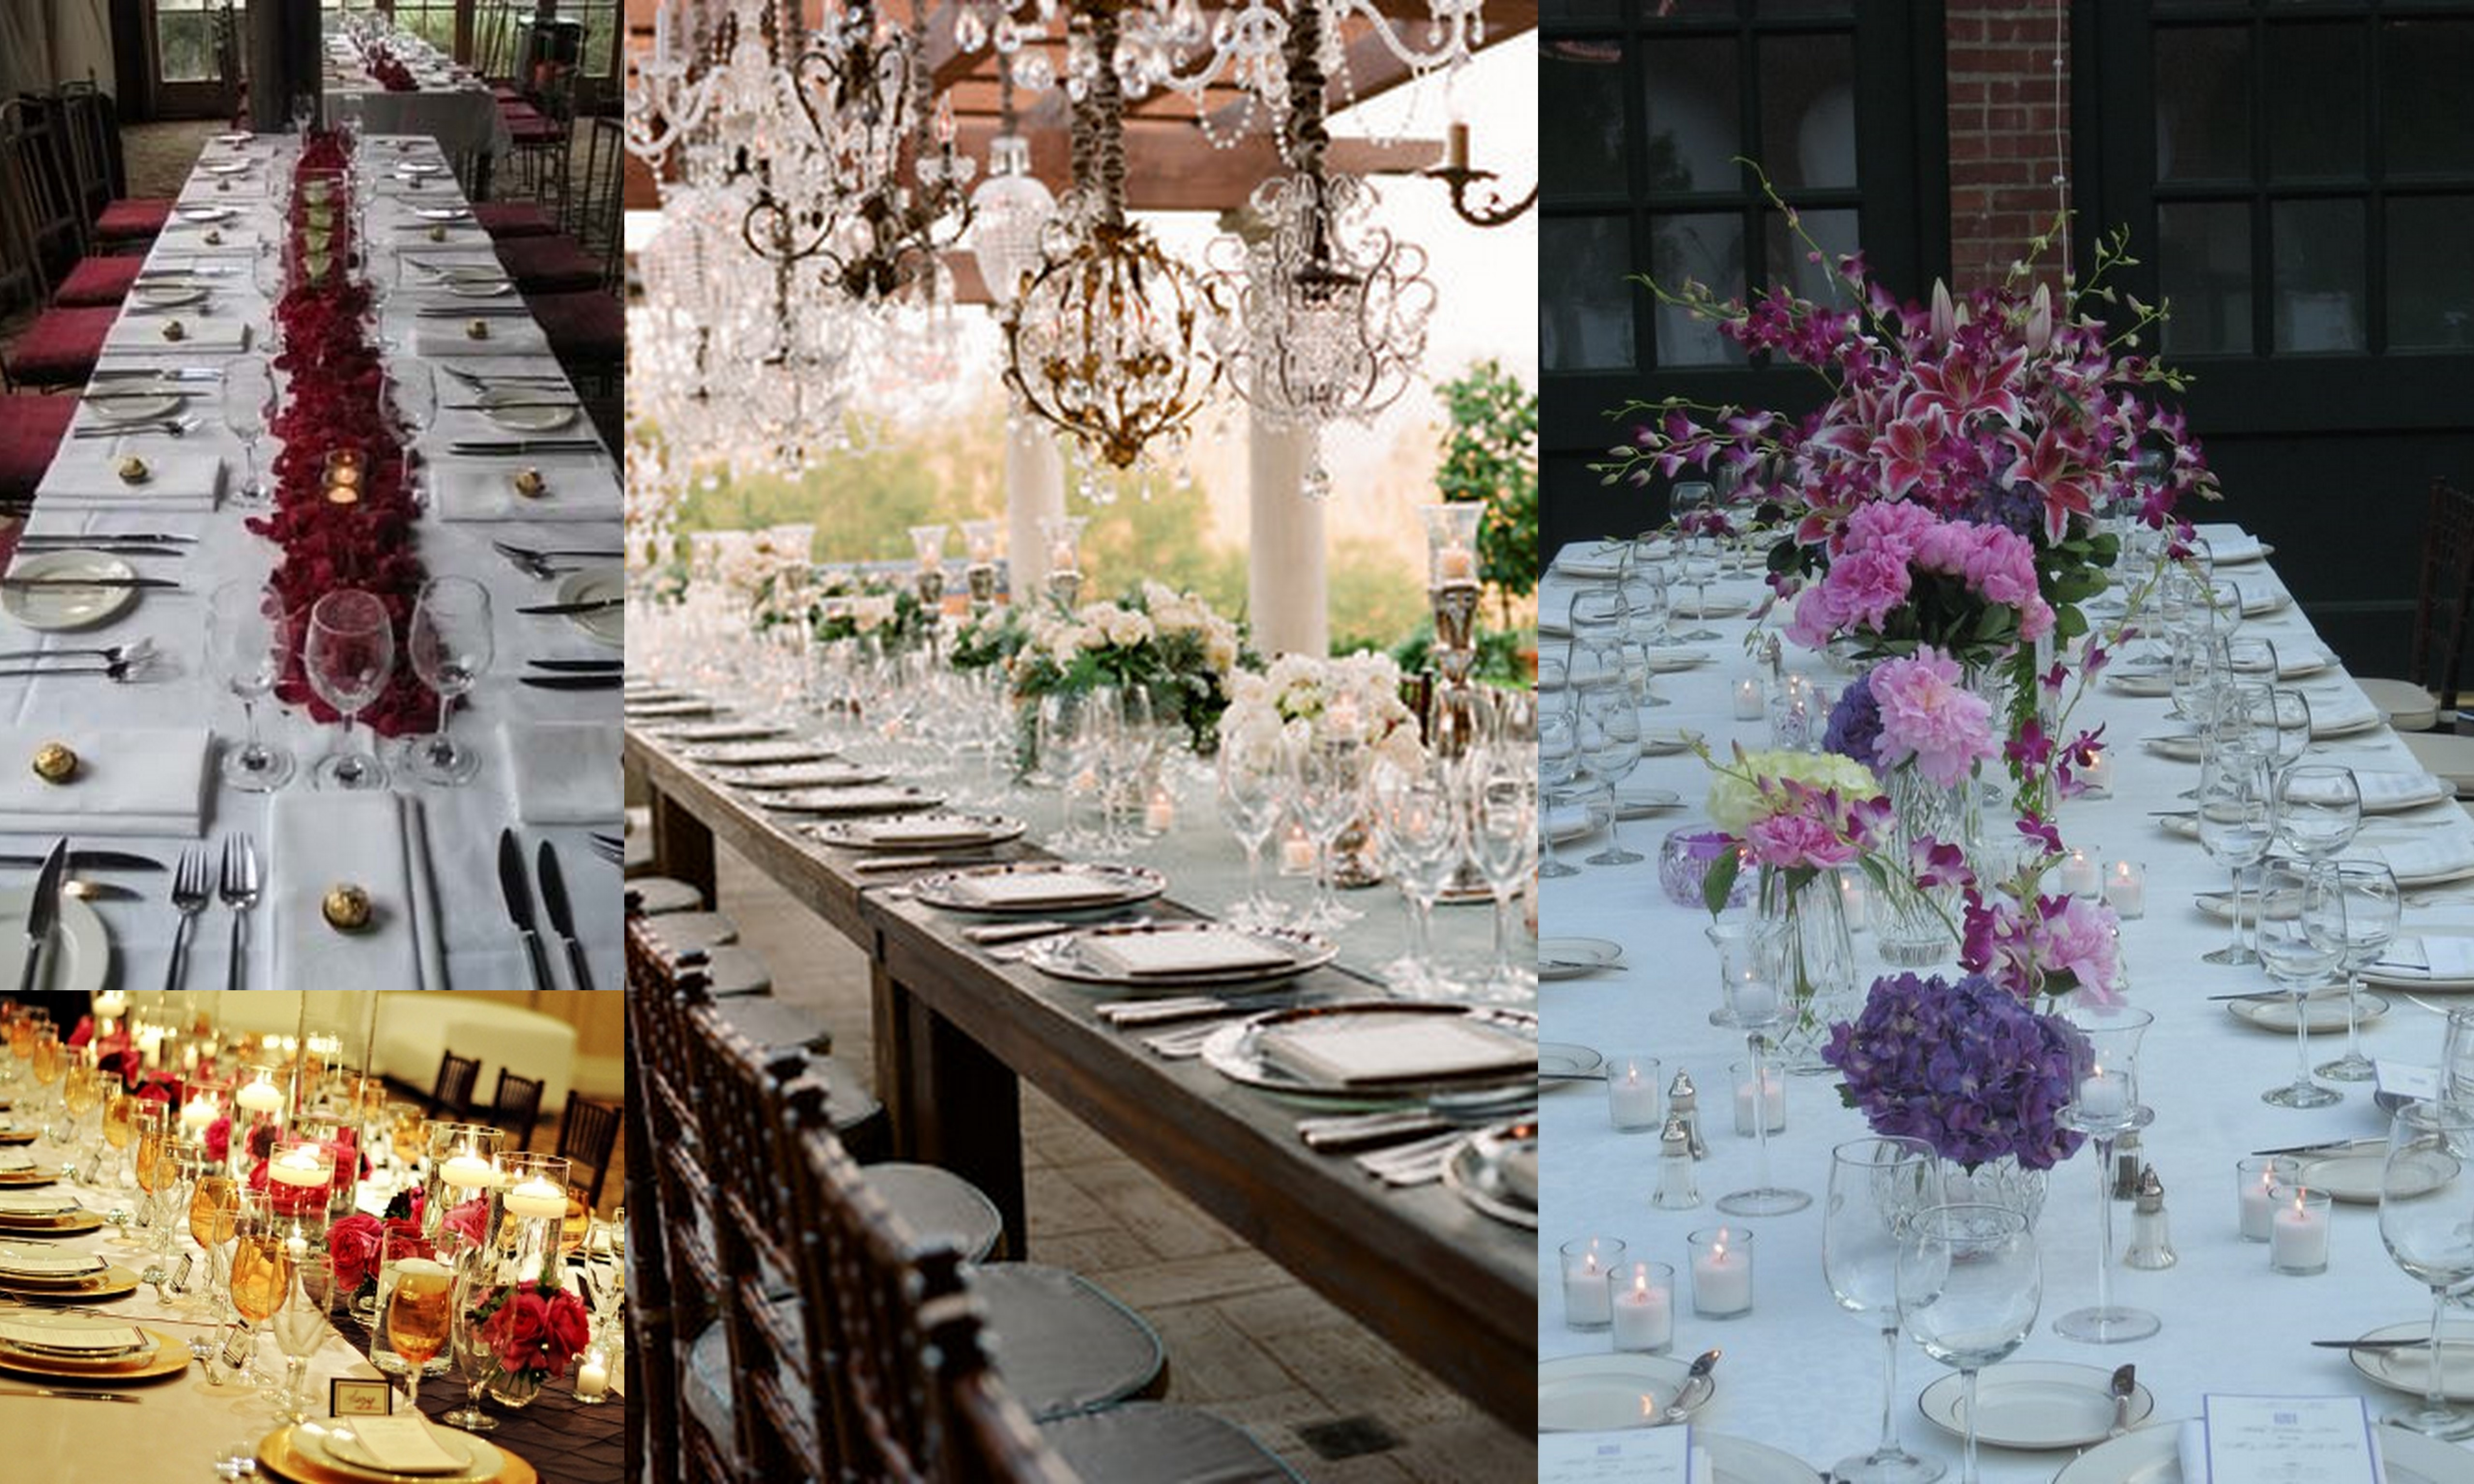 Wedding Table Shabby Chic Wedding Table Decorations wedding centerpieces dish feasting tables for your wedding